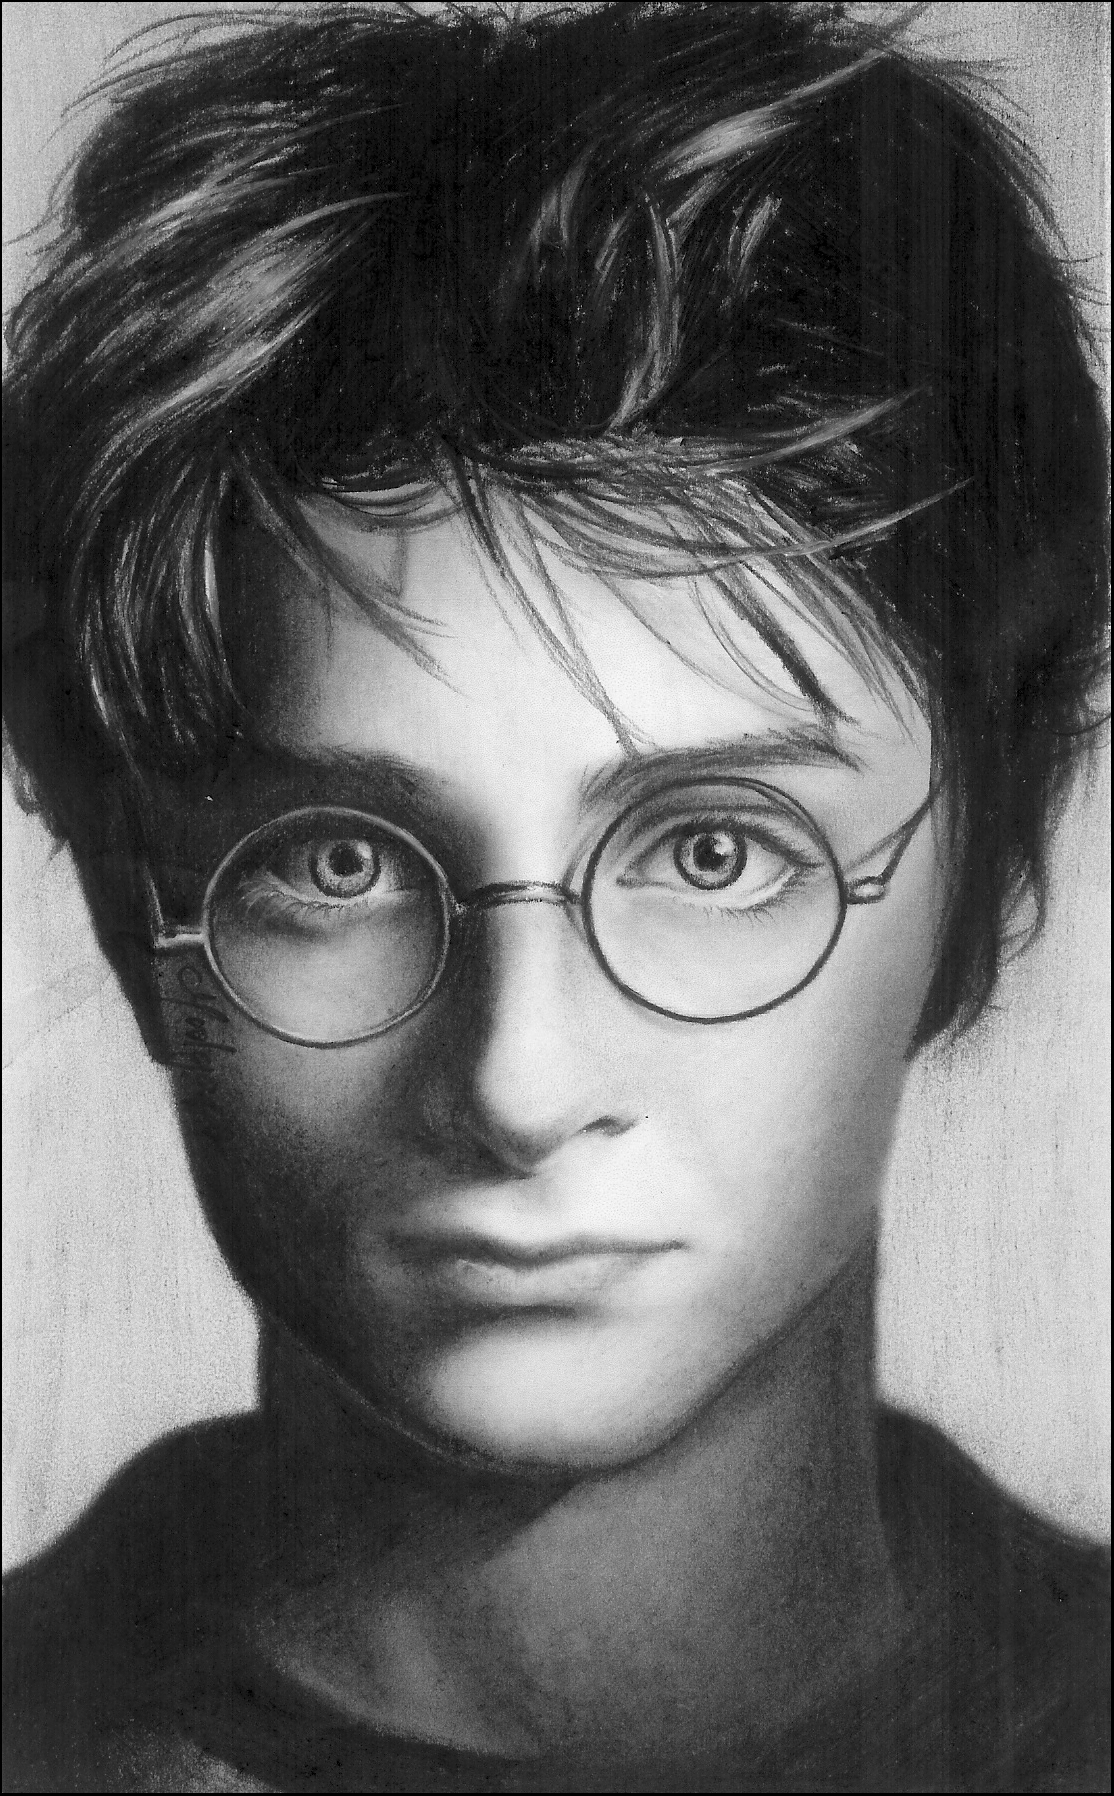 Harry Potter - Harry Potter Fan Art (96884) - Fanpop